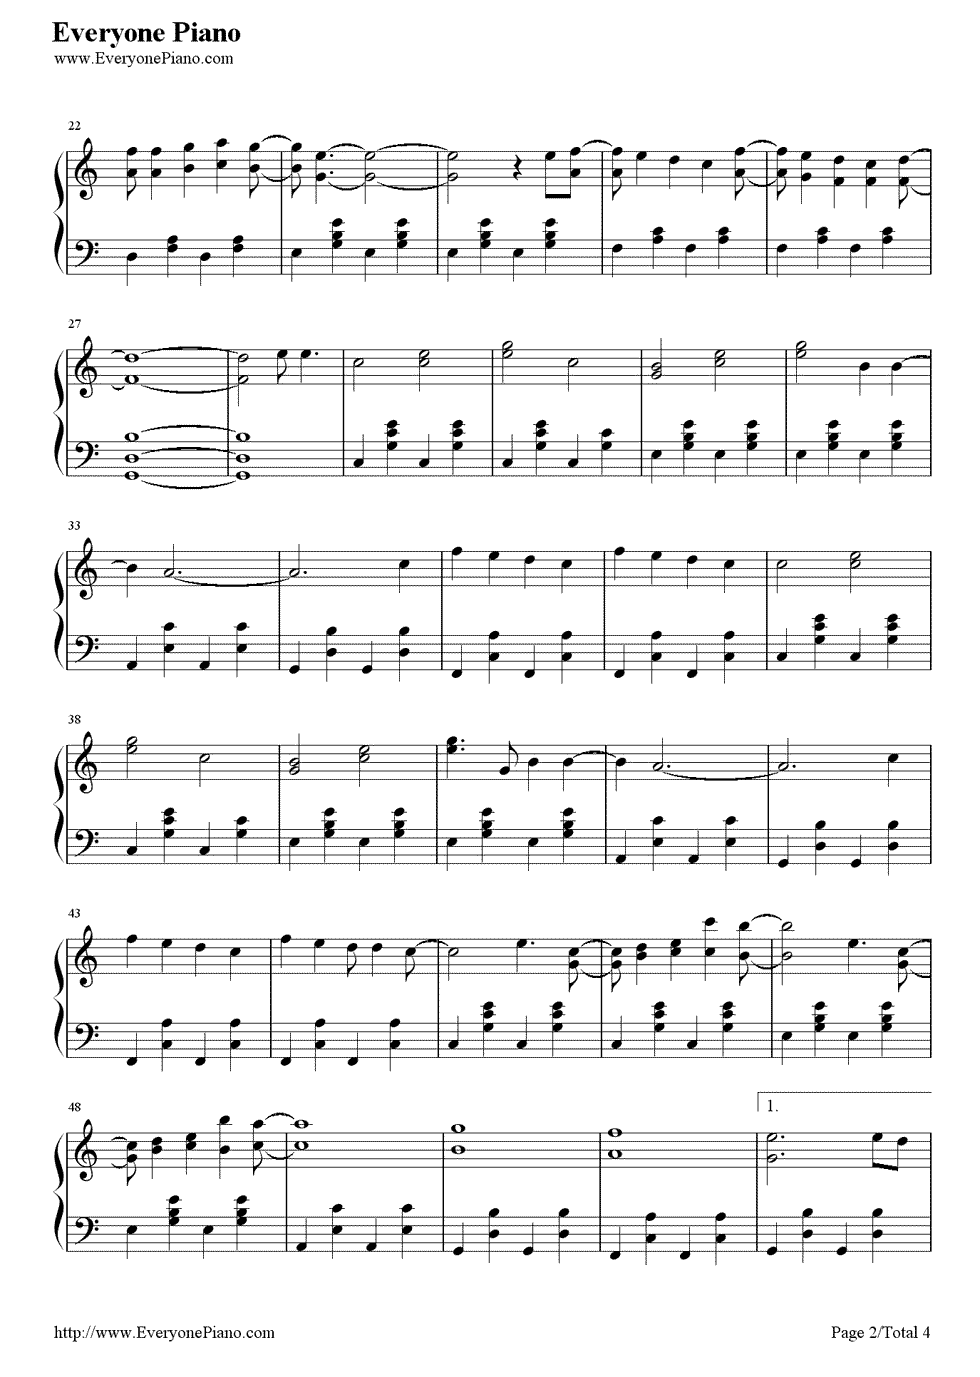 Count on me bruno mars stave preview 2 free piano sheet music listen now print sheet count on me bruno mars stave preview 2 hexwebz Image collections